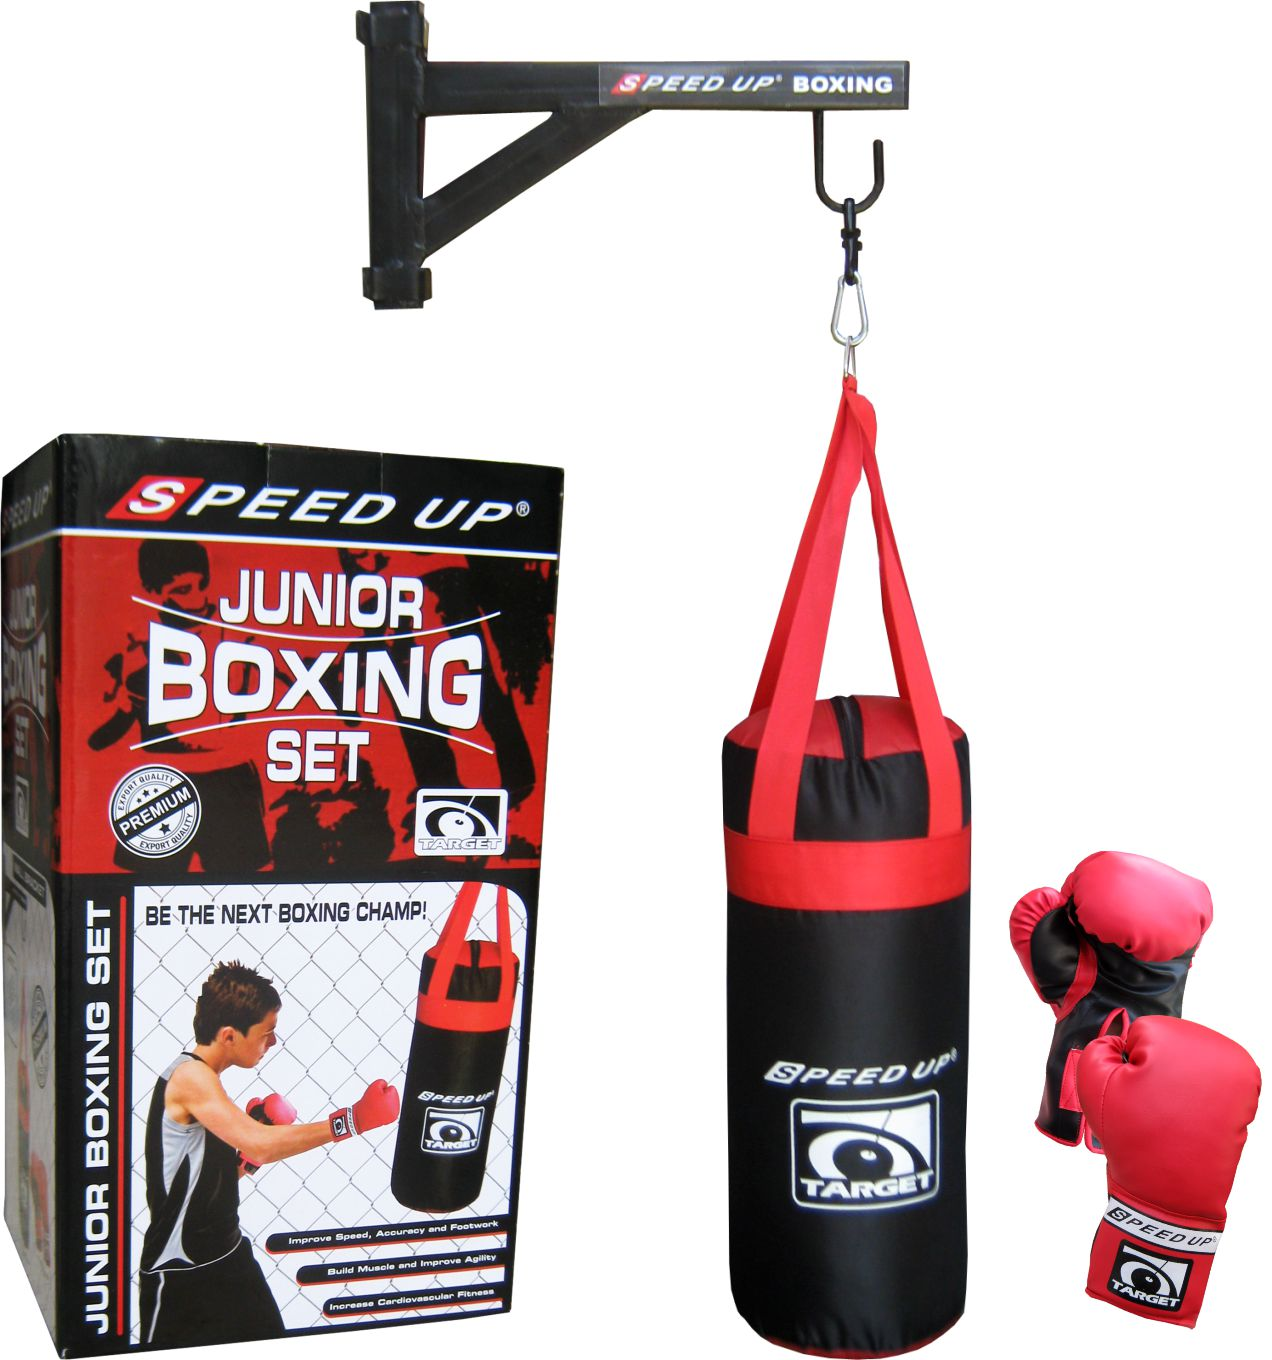 2670 JUNIOR BOXING SET